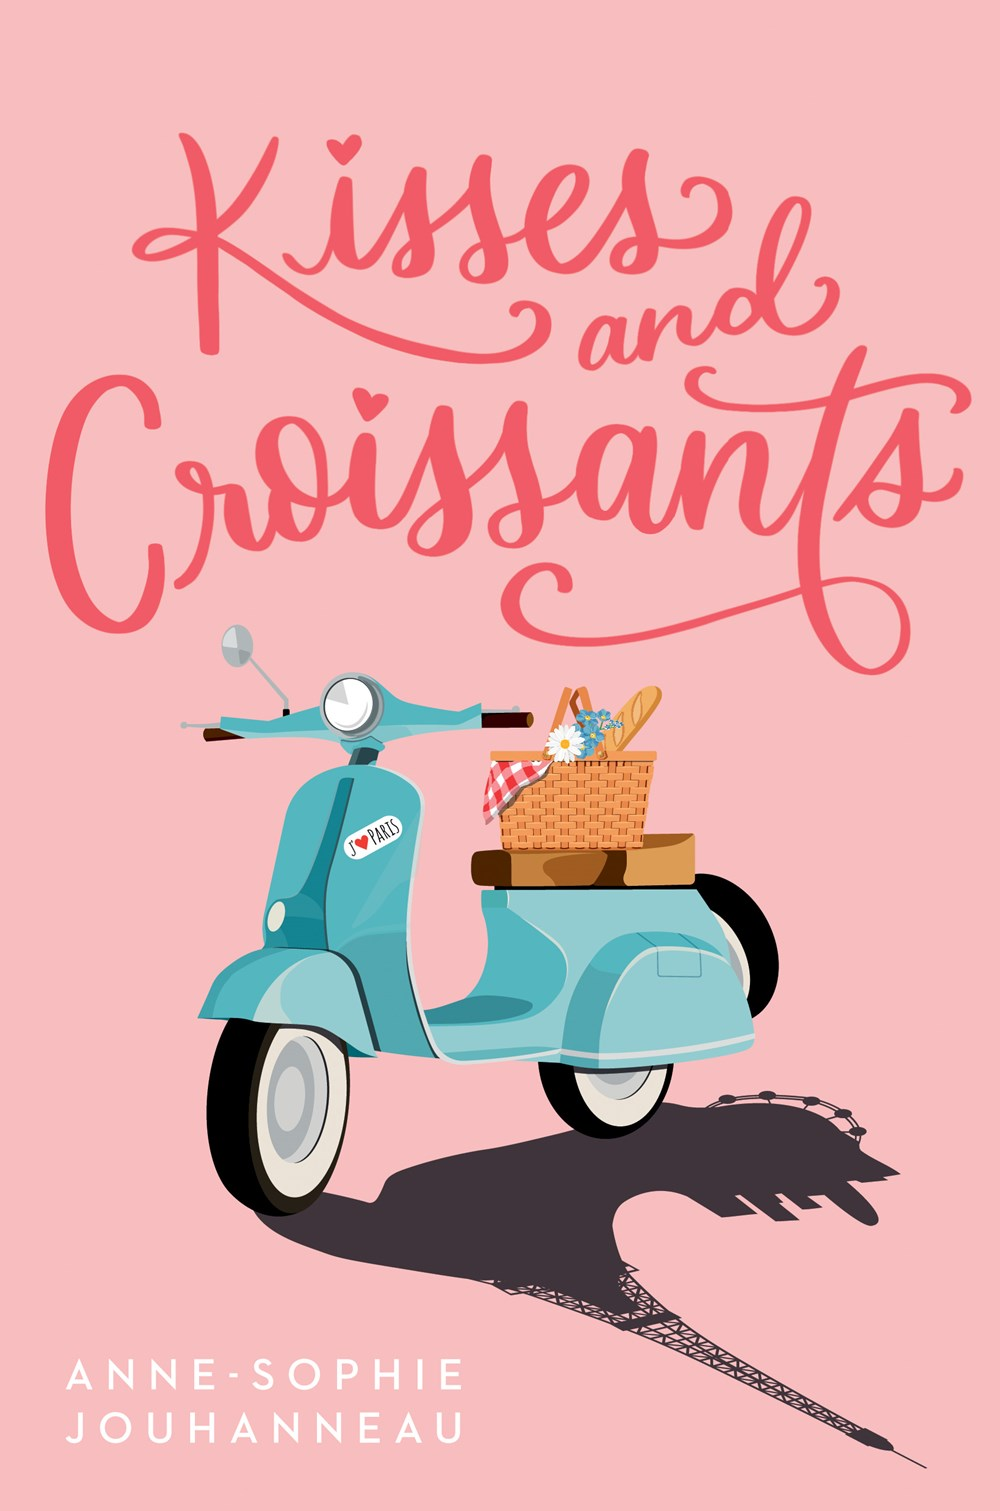 Kisses and Croissants book cover